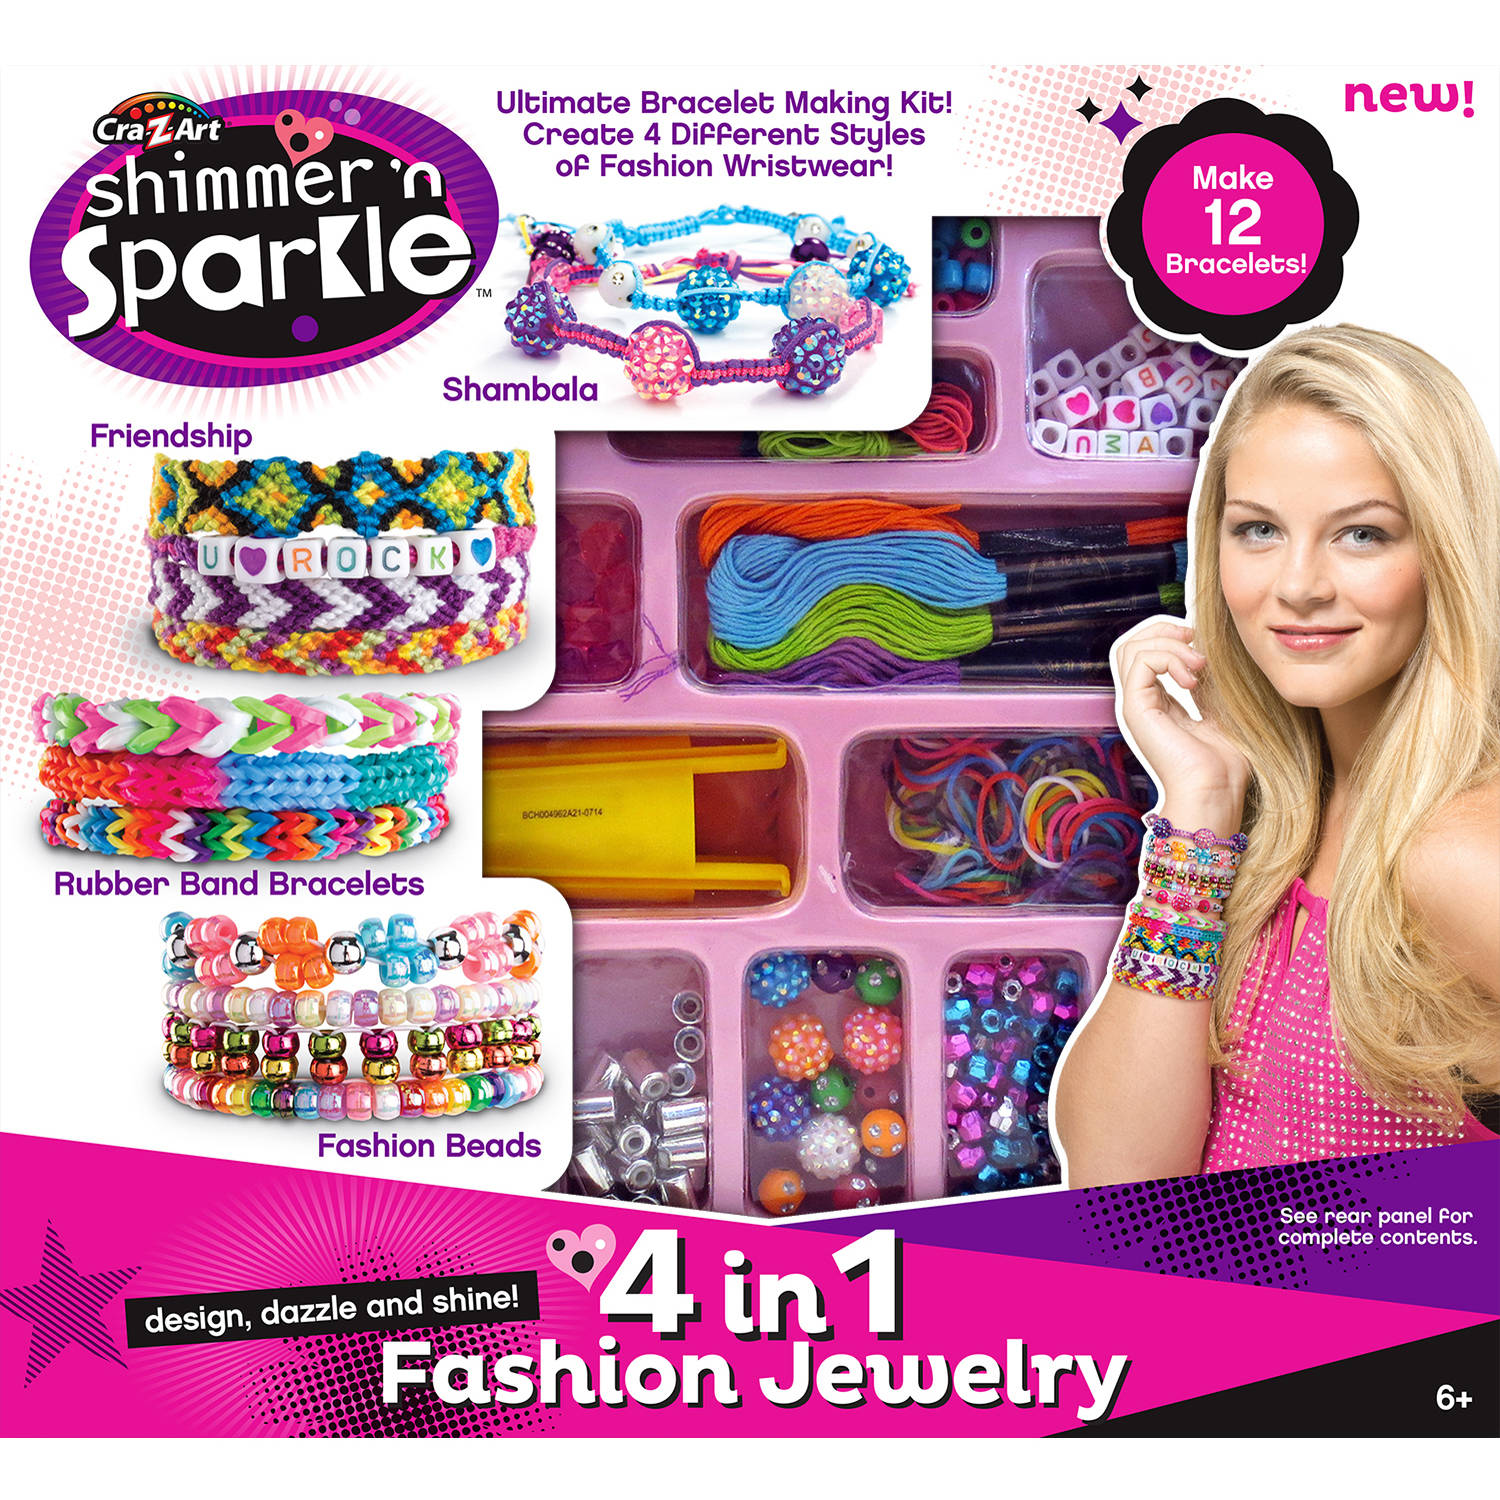 Bracelet maker kit toys r us